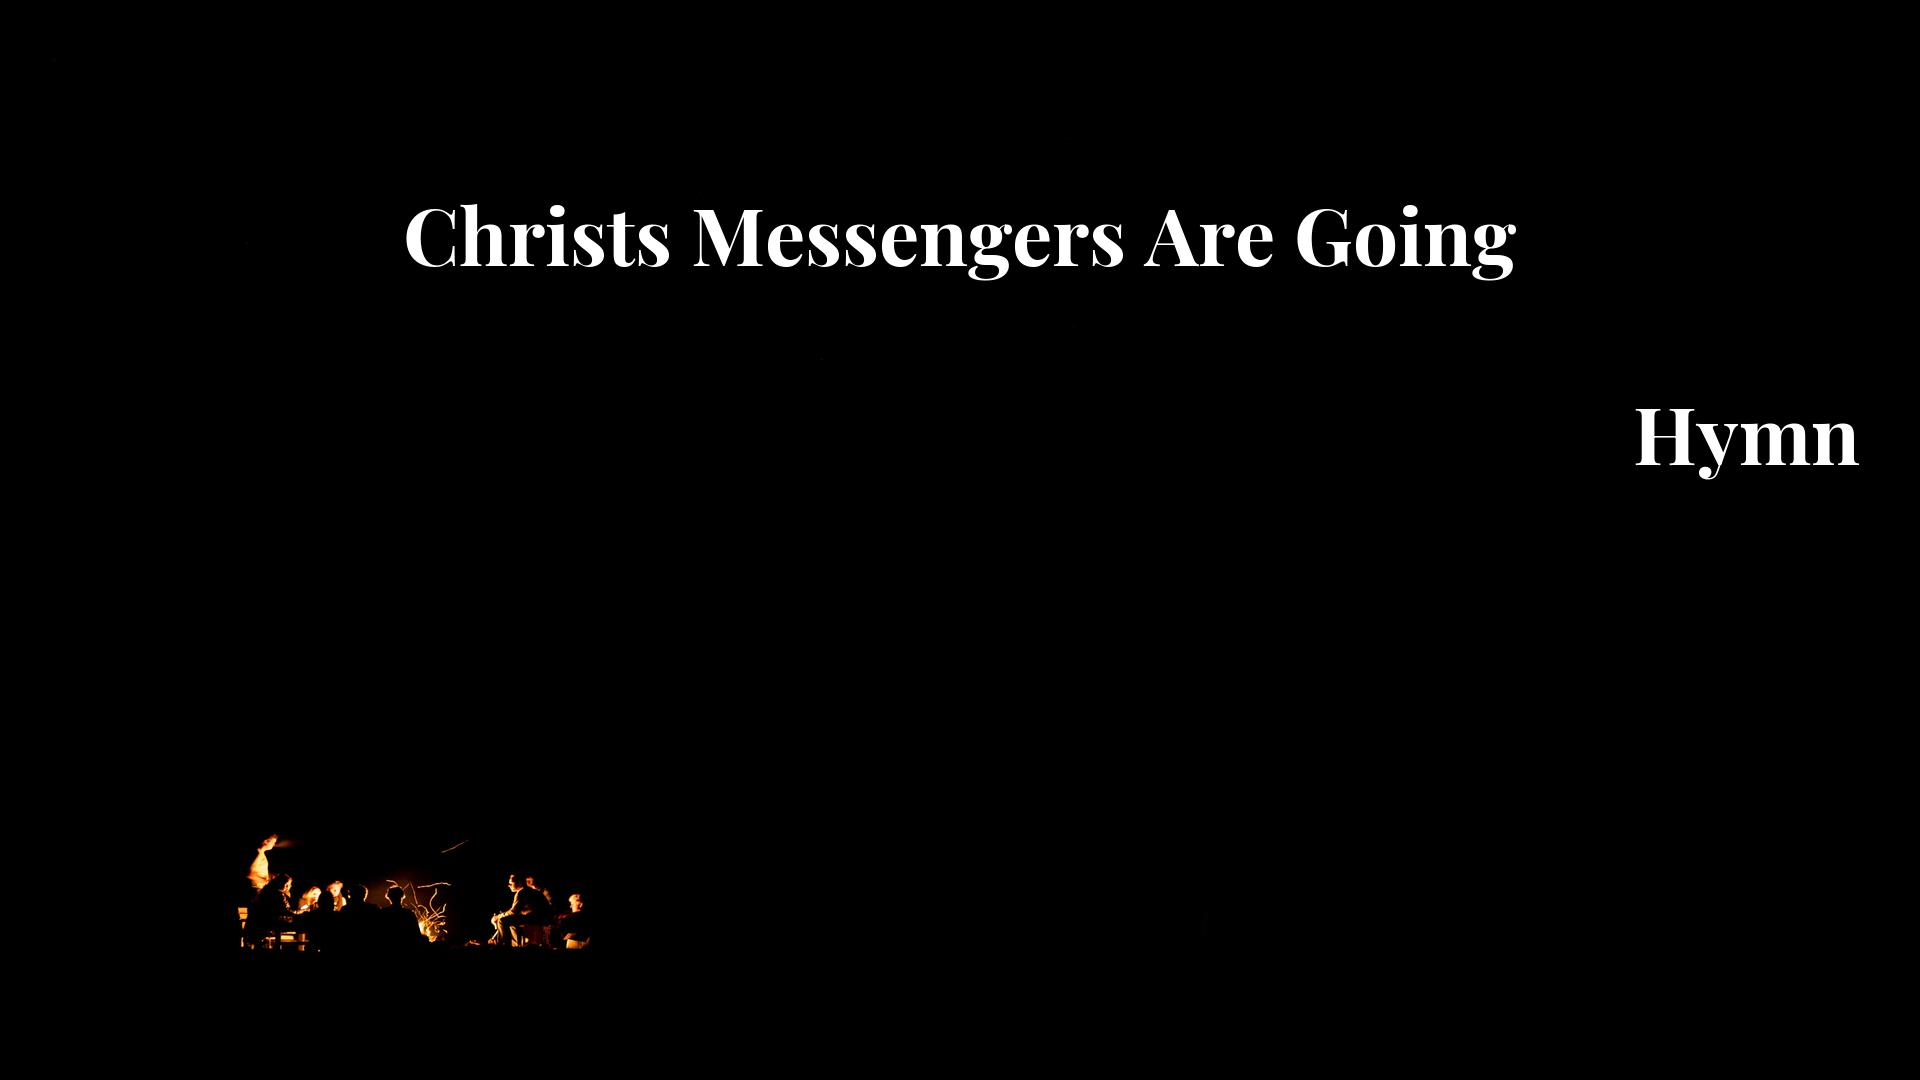 Christs Messengers Are Going - Hymn